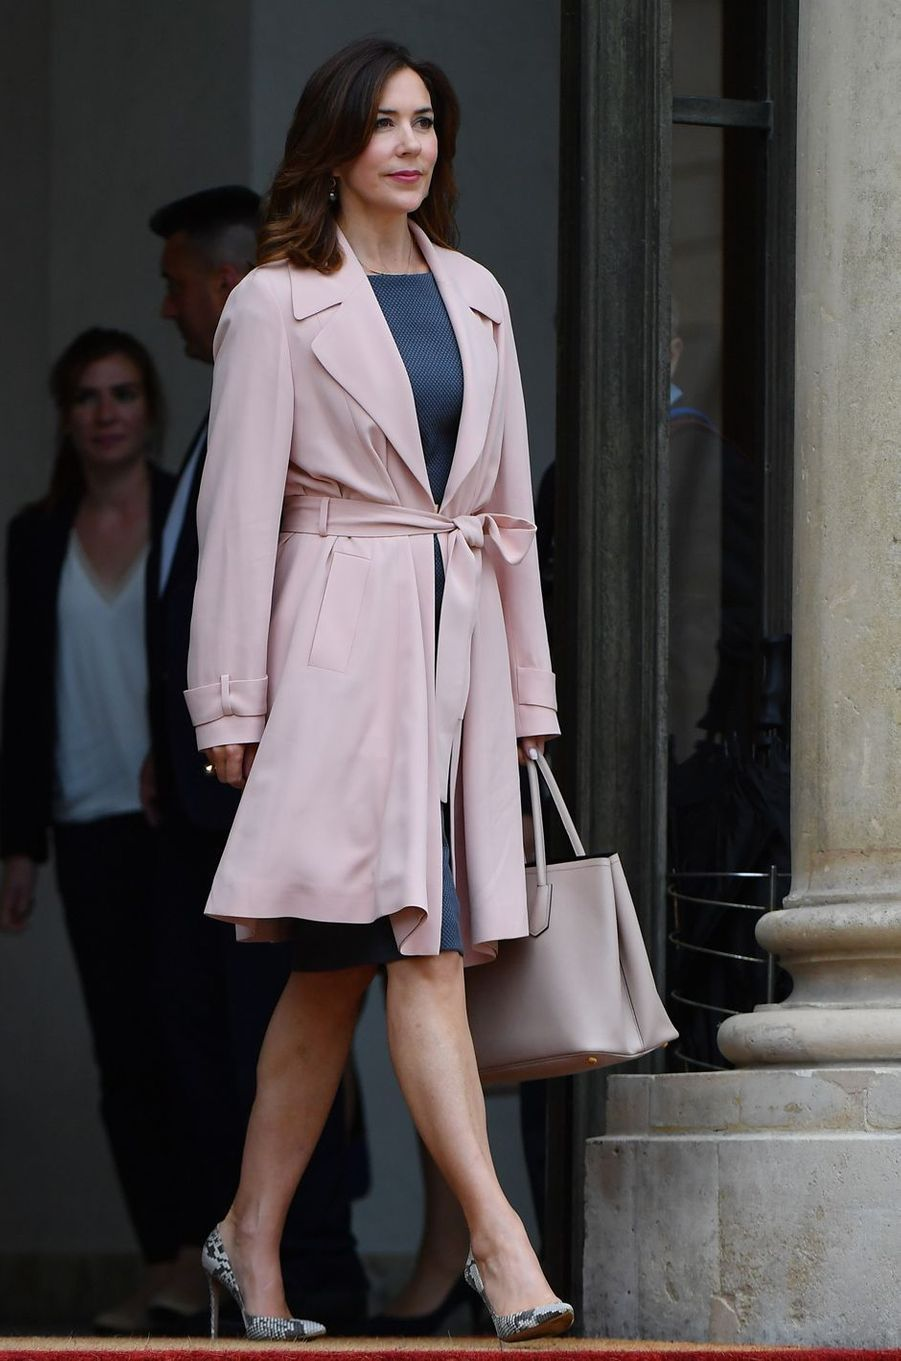 La princesse Mary de Danemark à Paris, le 6 juin 2017